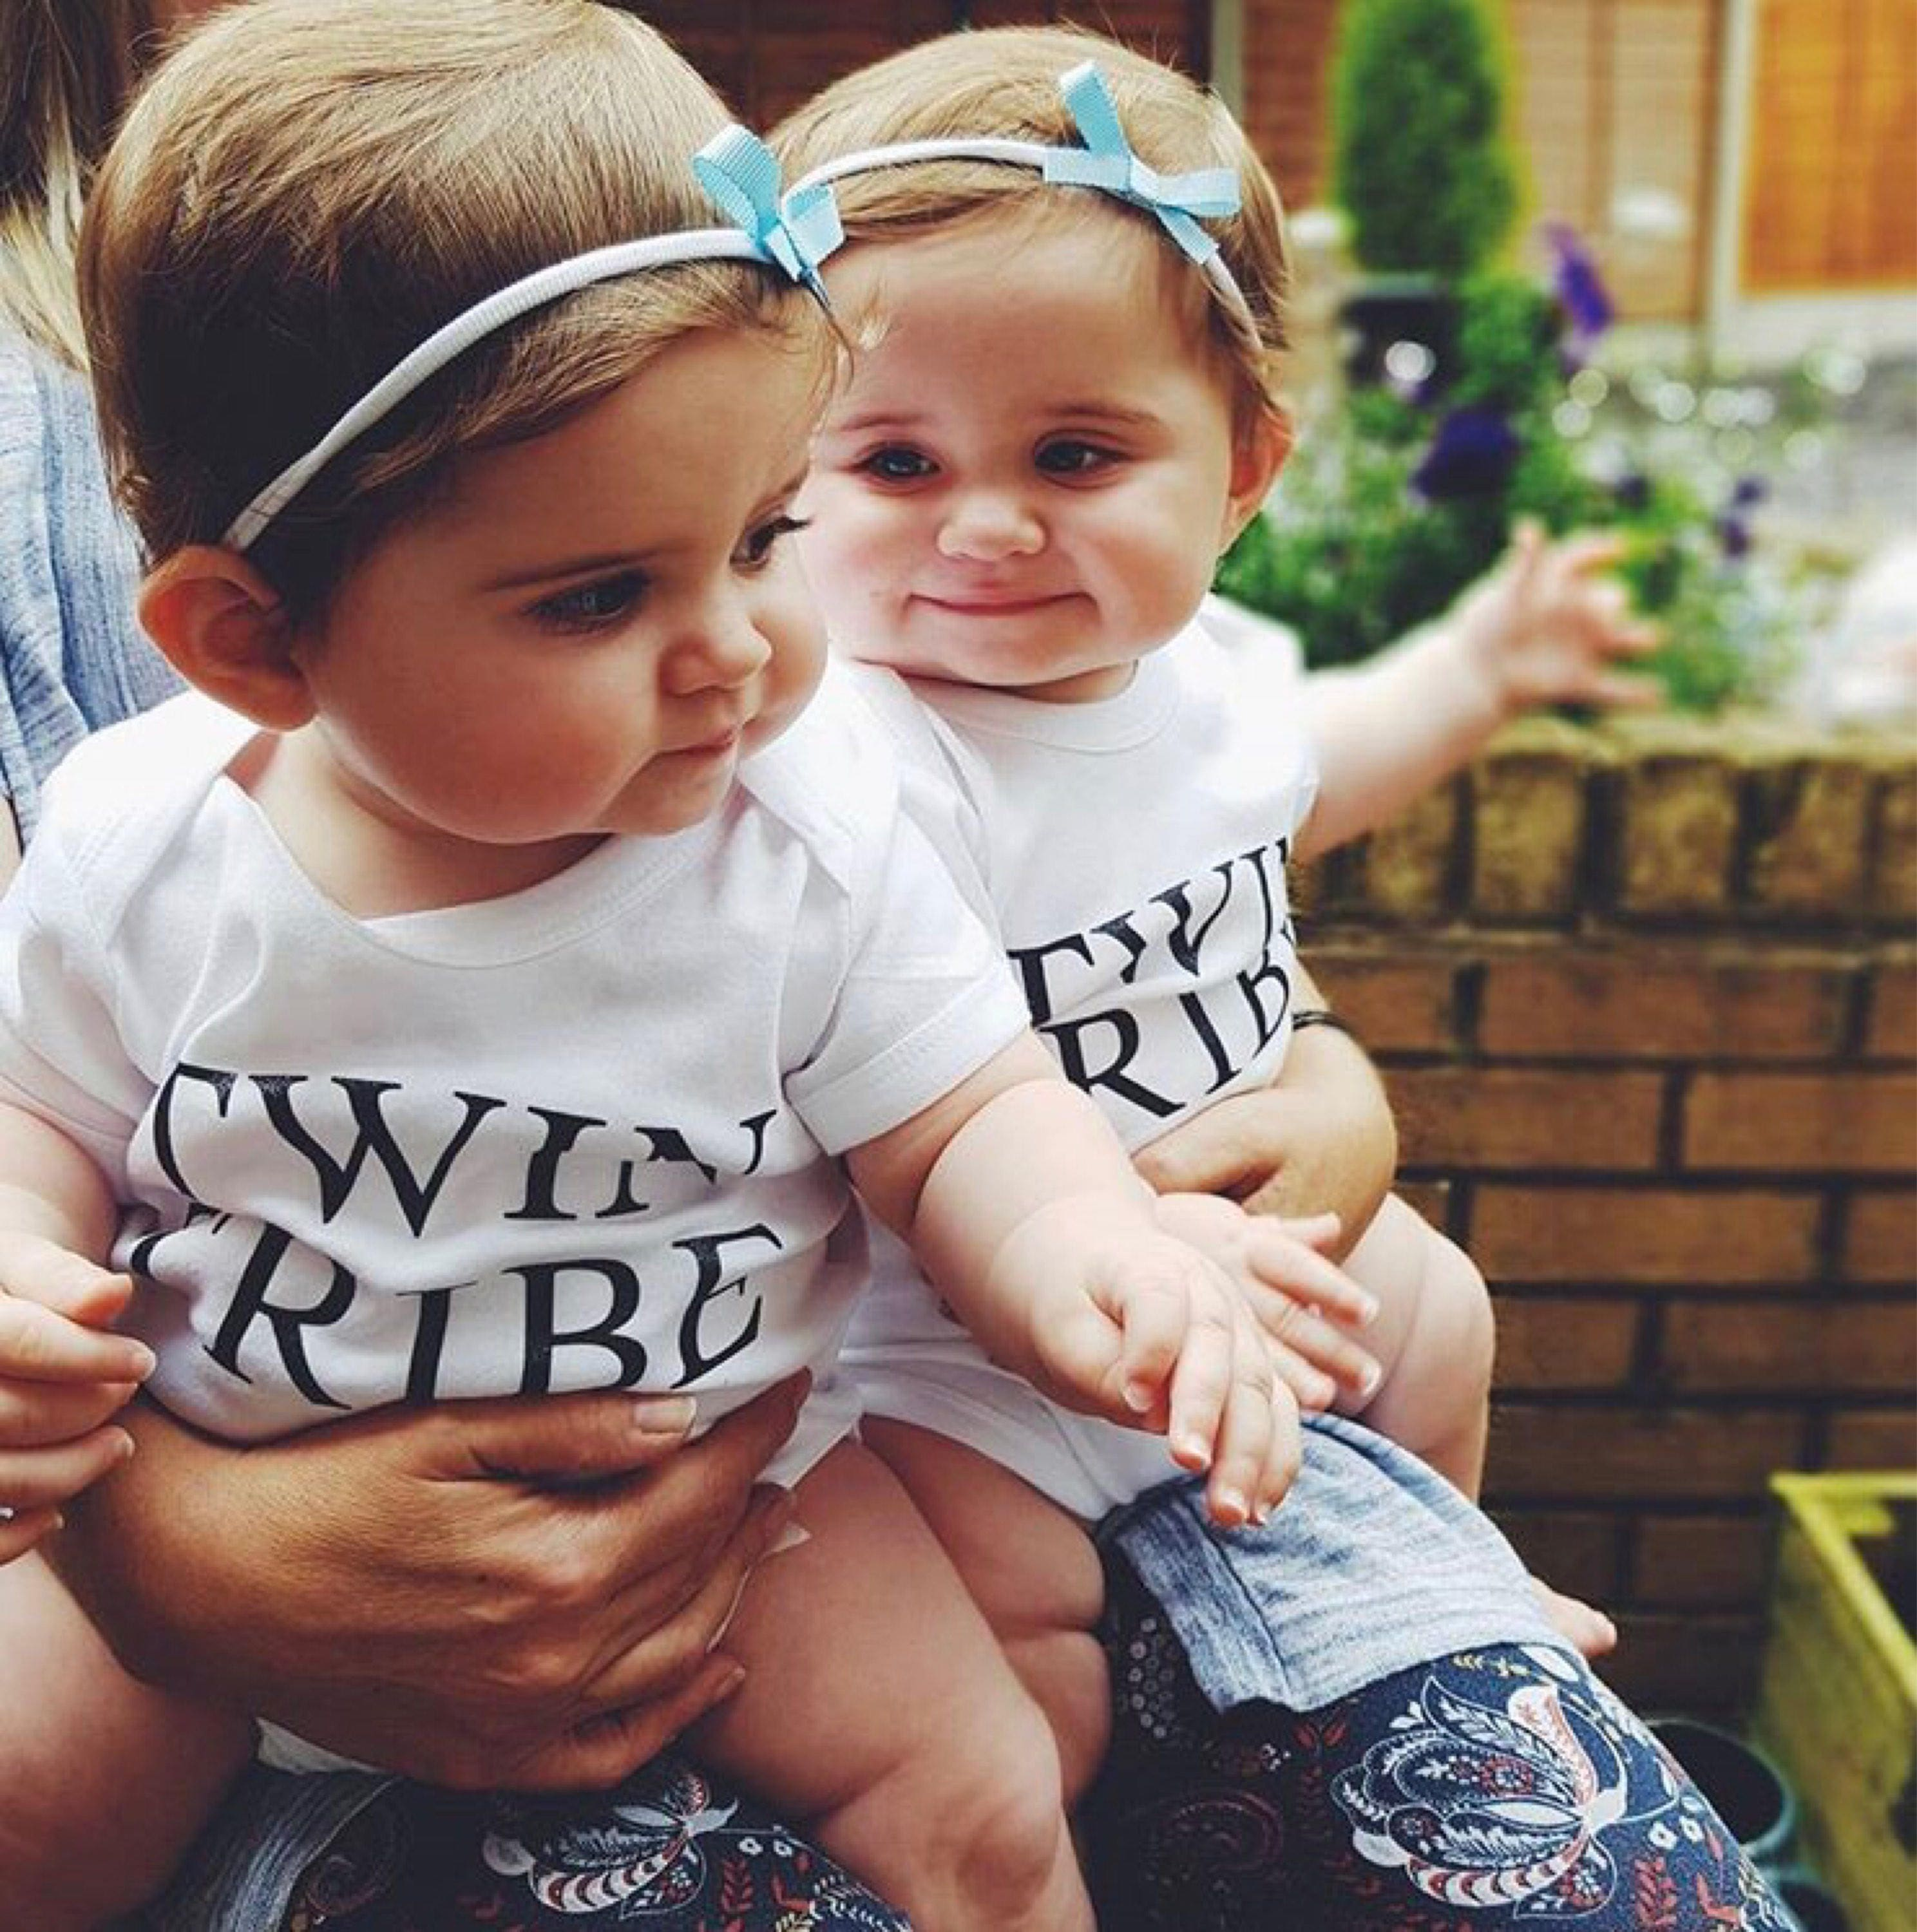 Designer Baby Clothes Twins | Twin Tribe Baby Vests Twinning Twin Baby Clothes Twin Gifts Baby